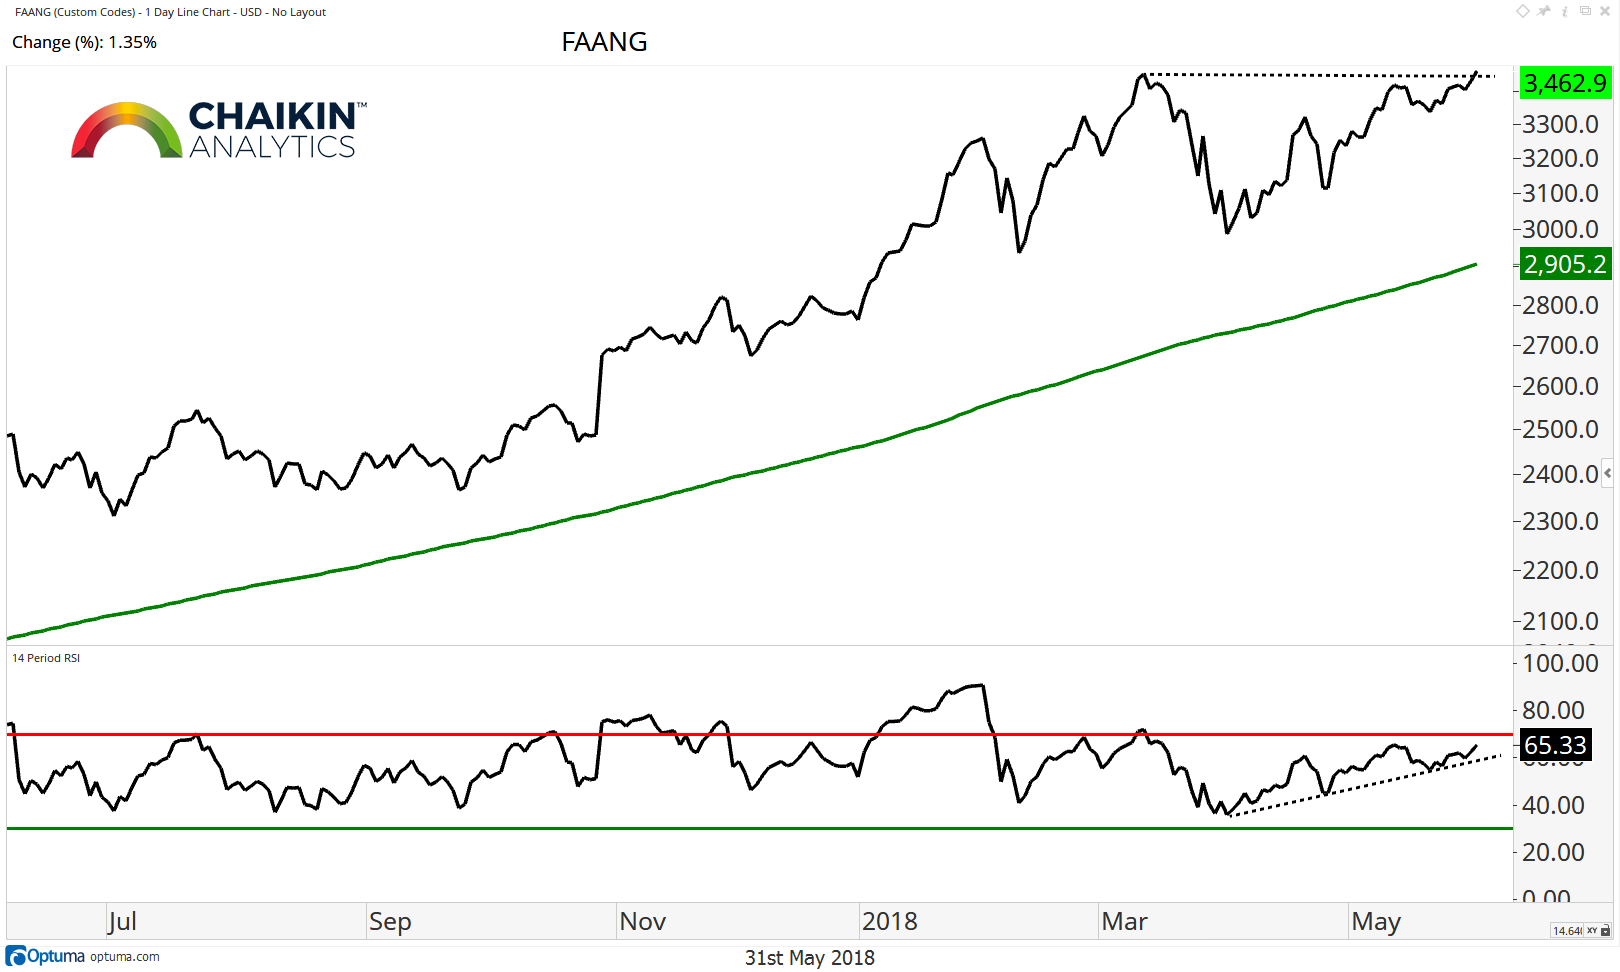 faang stocks composite performance chart investing one year ending 1 june 2018